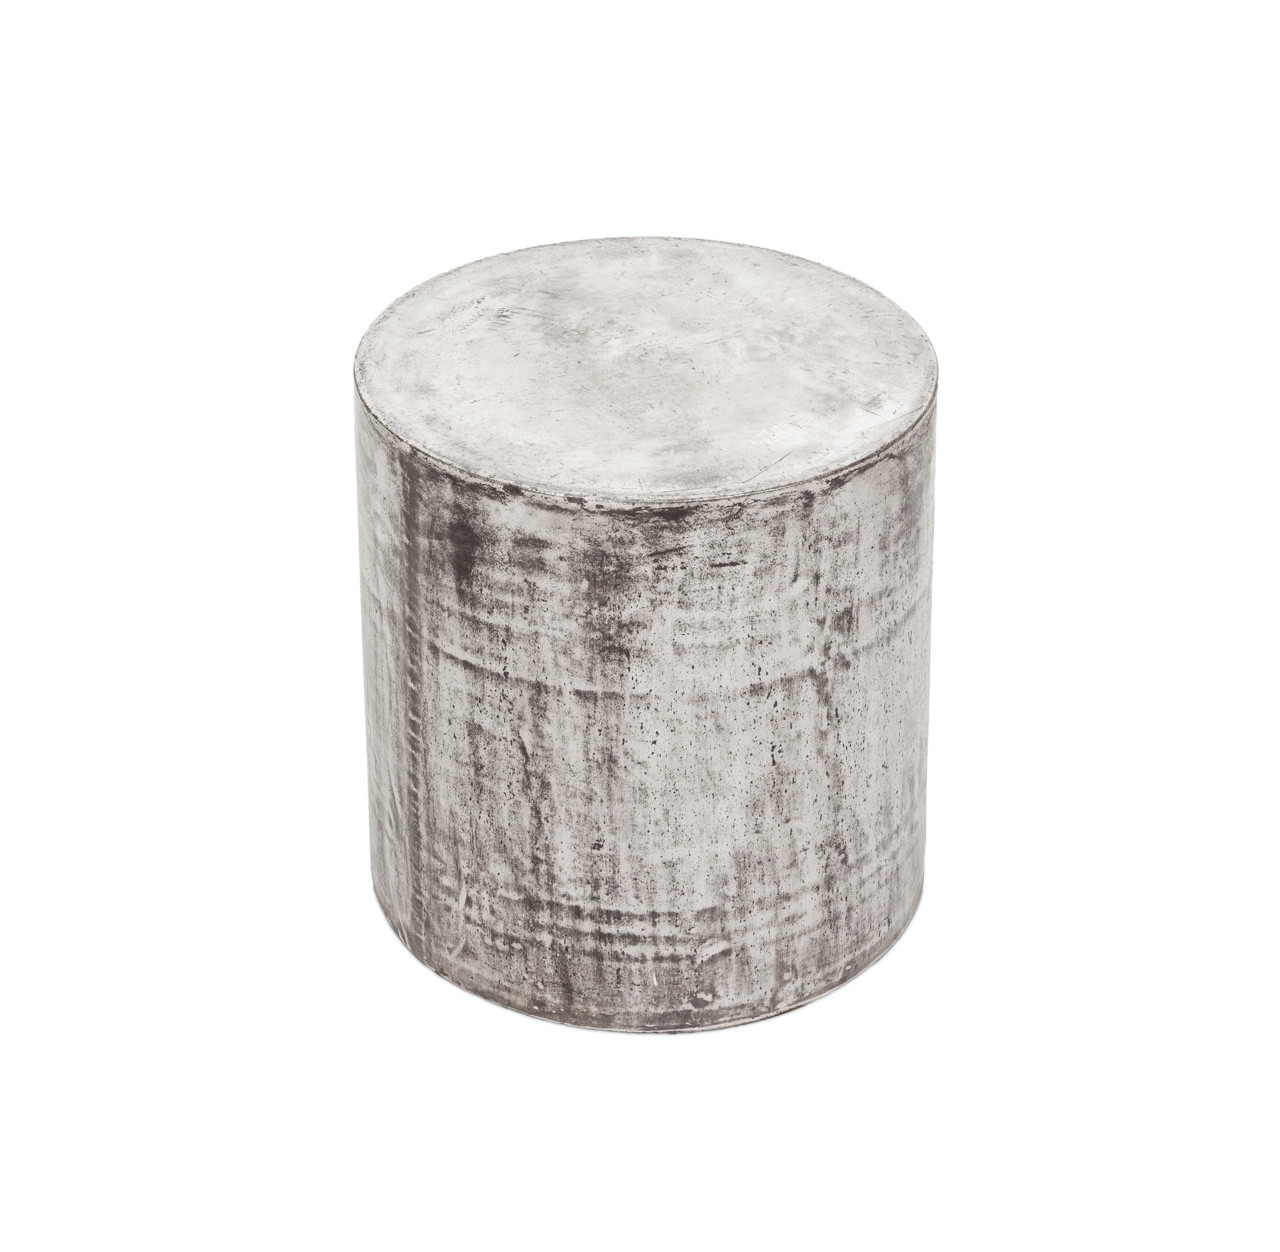 Buy Side Table Concrete Look Side Table Round Buy Side Tables Online